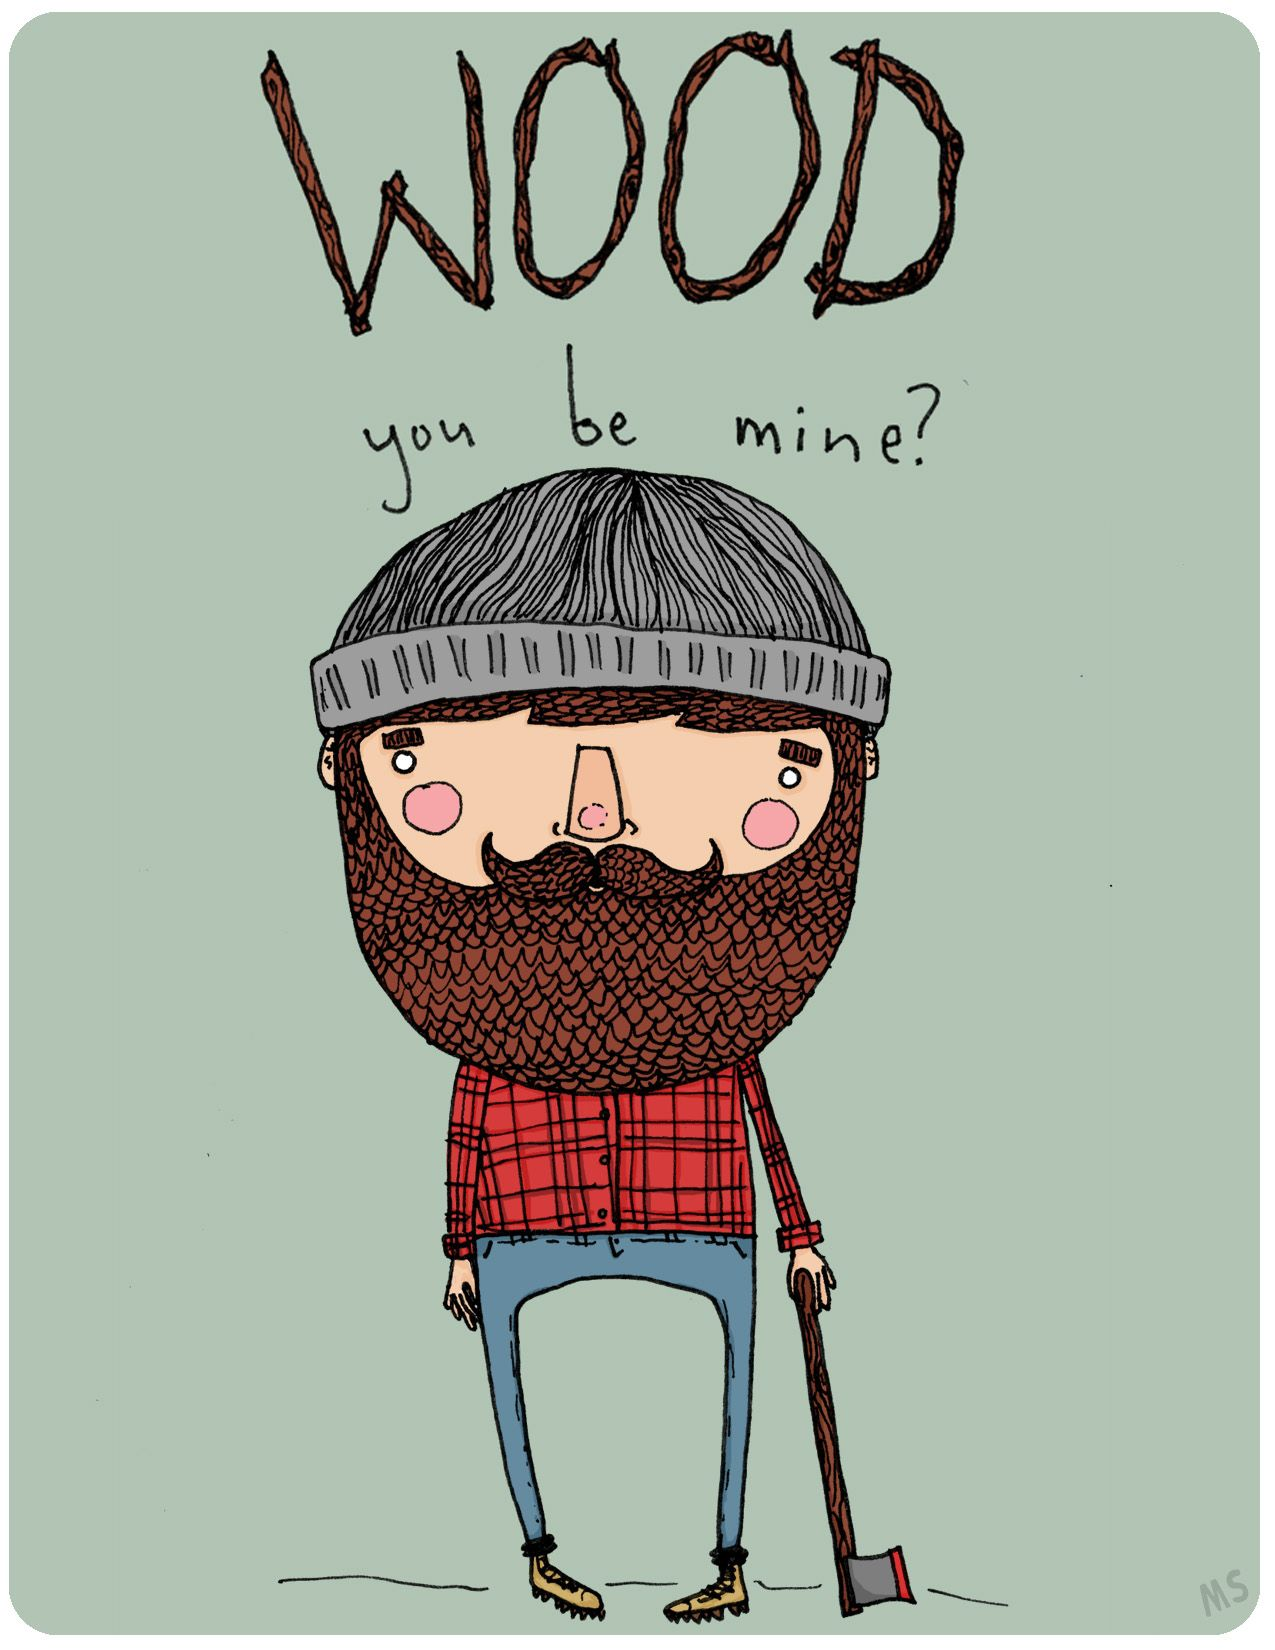 cute lumberjack art for your valentine beards beard beaded man men day card cards graphic print